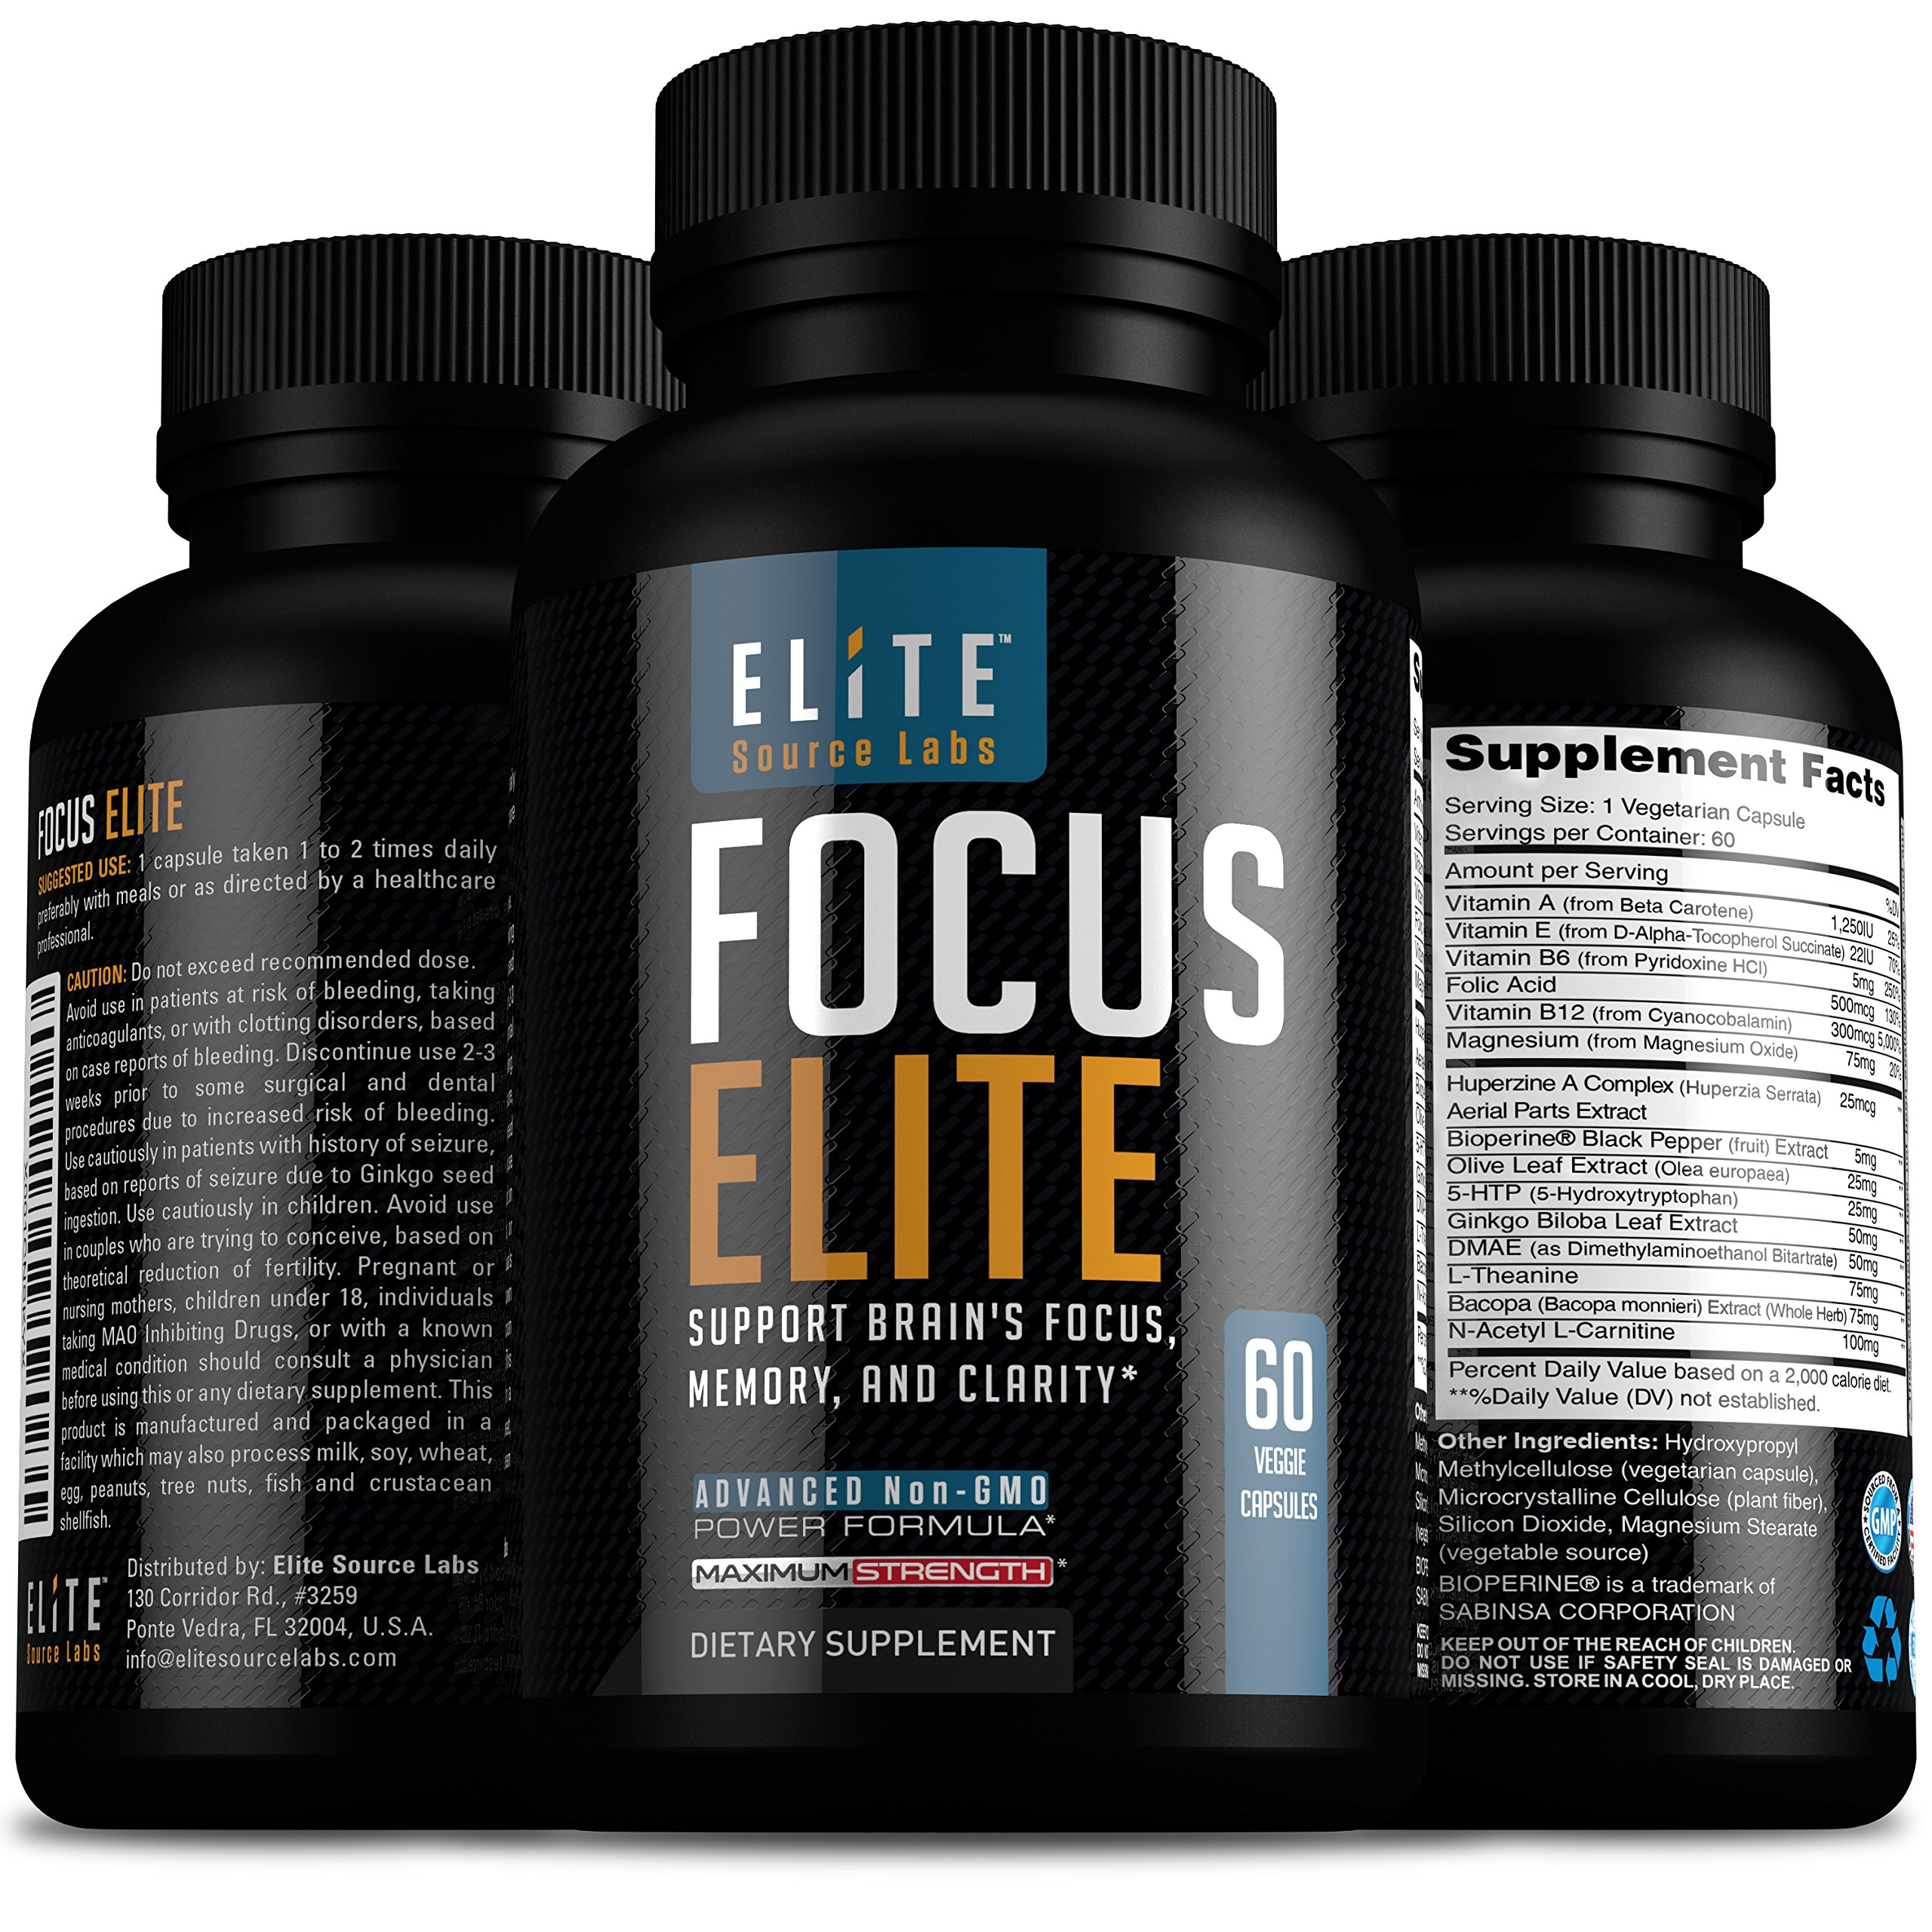 Focus Elite Brain Support Supplement - Natural Brain Boost to Stay Focused, Better Memory and Clarity - Ginkgo Biloba, Bacopa Monnieri, DMAE & More - Best Nootropics Vitamins for Brain Health 60 Caps